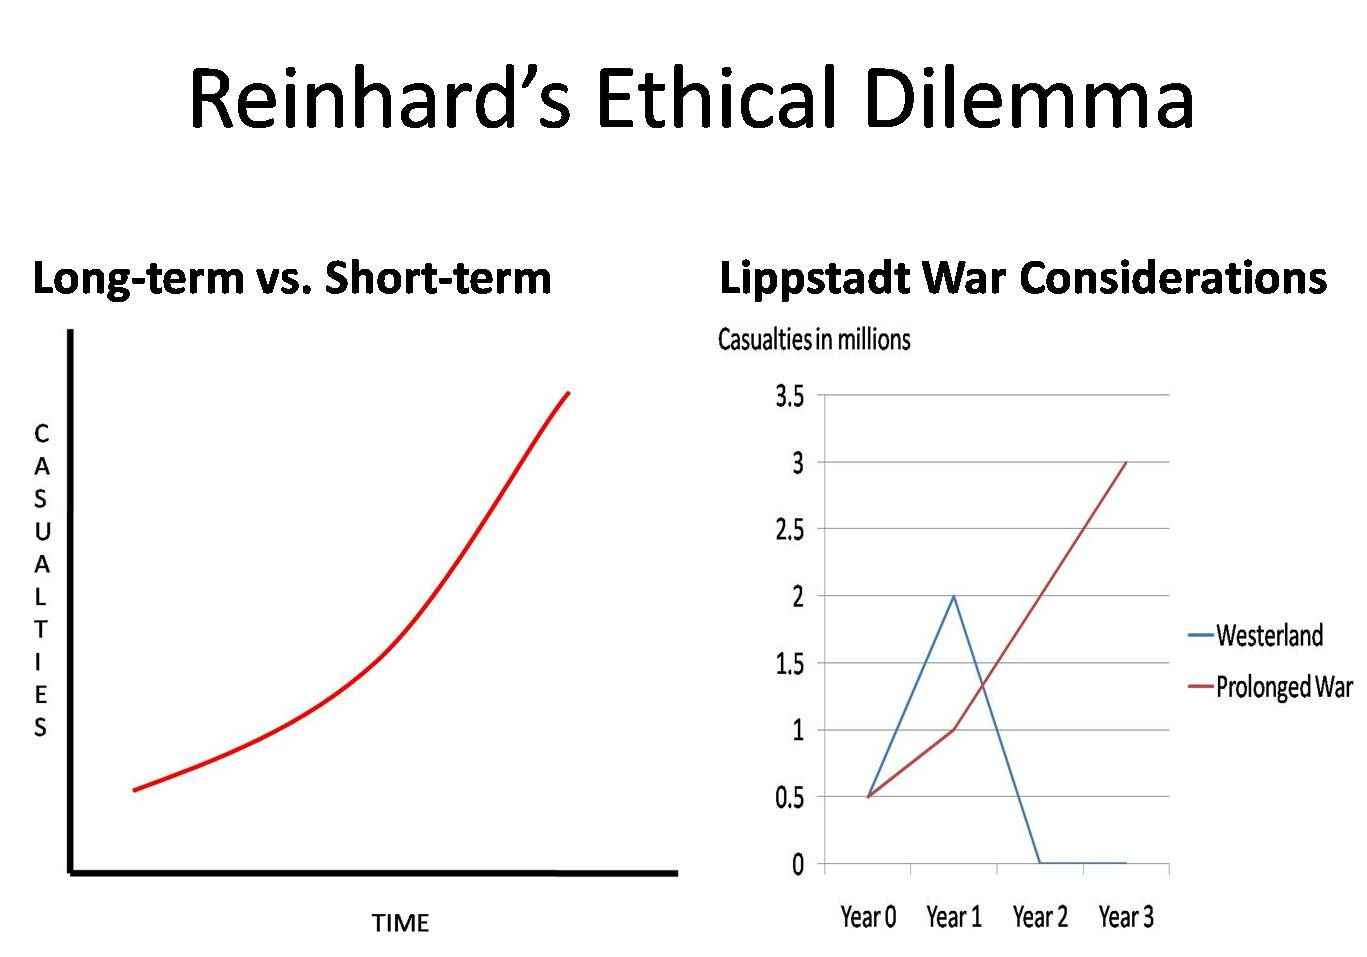 Reinhard's Ethical Dilemma